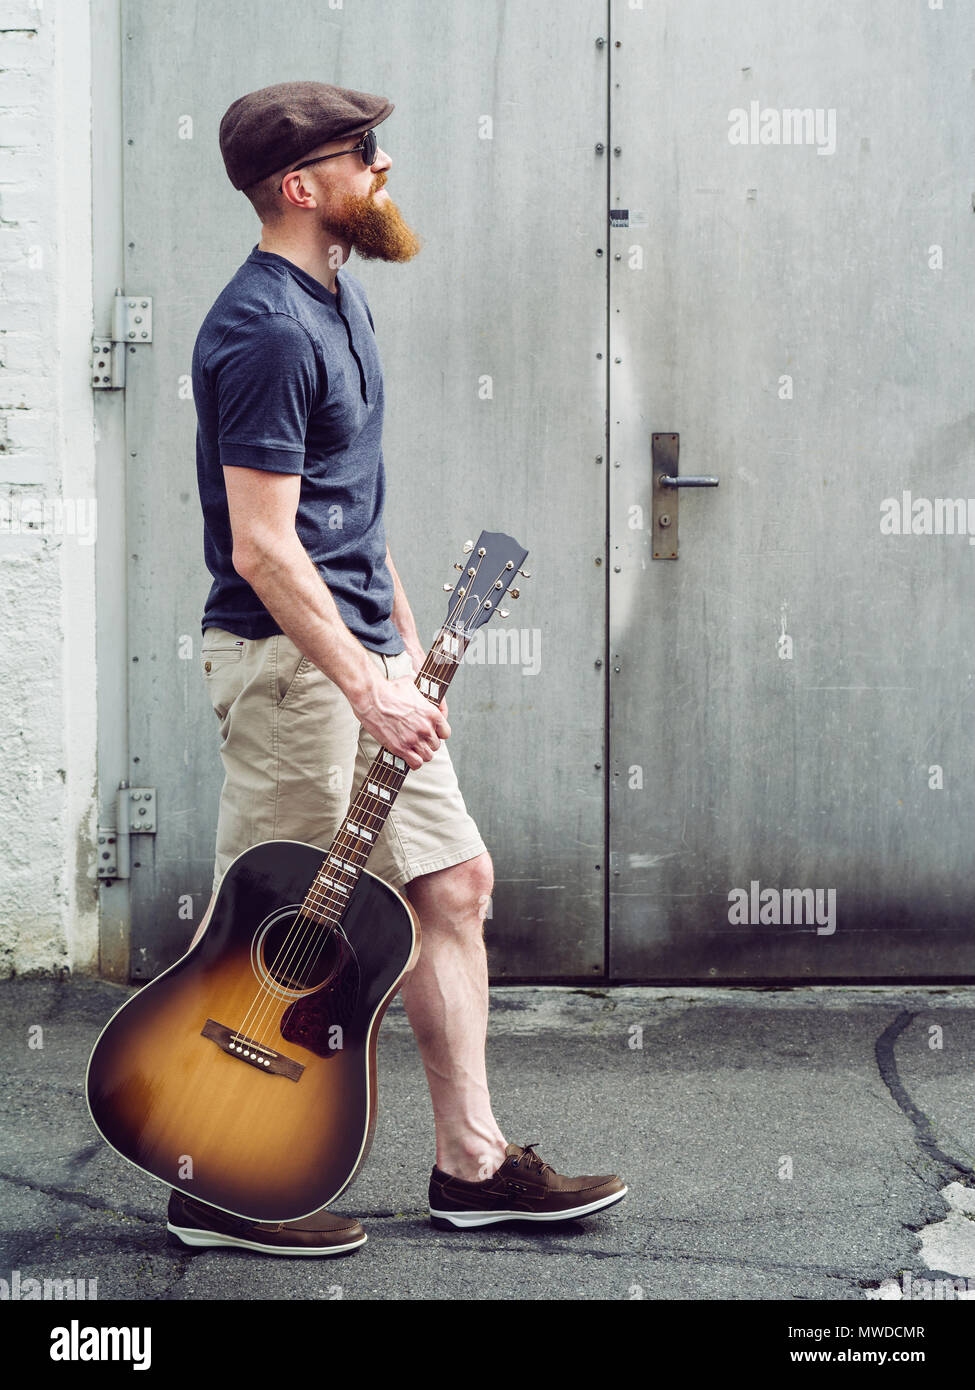 Photo of a bearded man walking with an acoustic guitar. - Stock Image